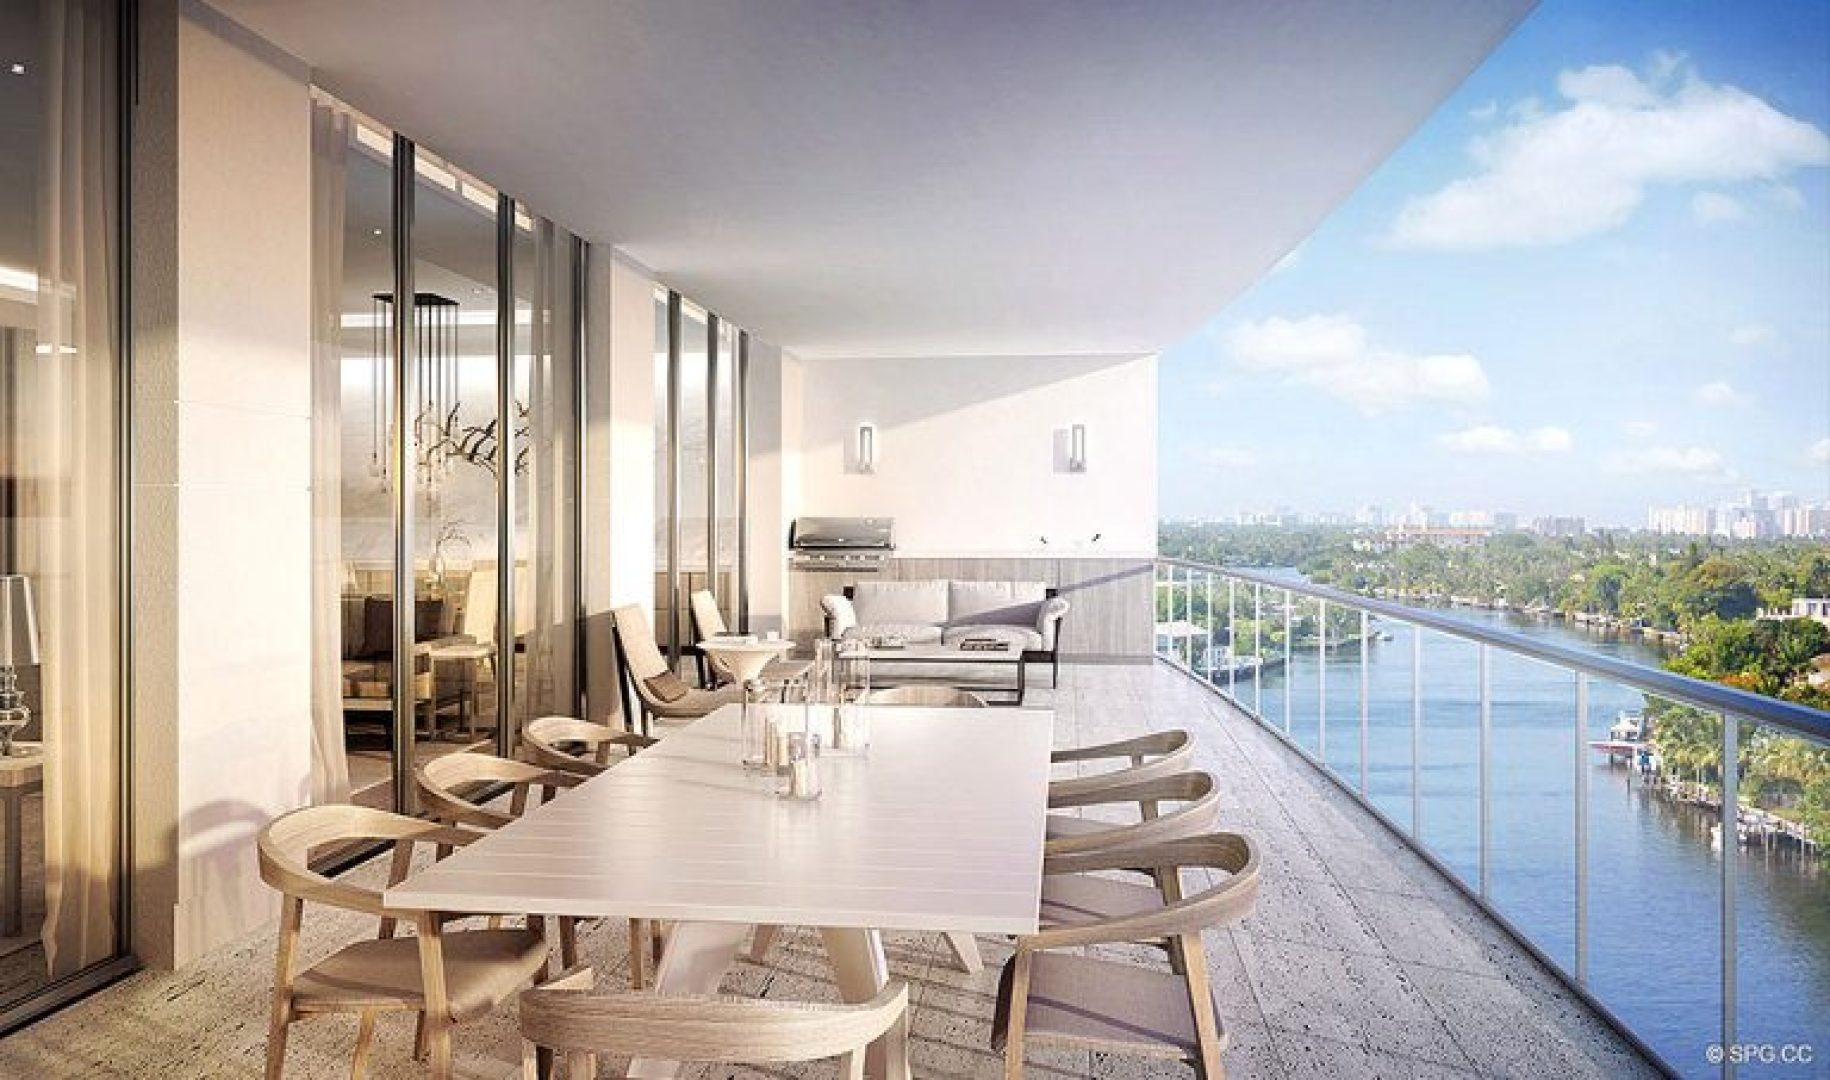 Splendid Intracoastal Terrace Views at Riva, Luxury Waterfront Condos in Fort Lauderdale, Florida 33304.